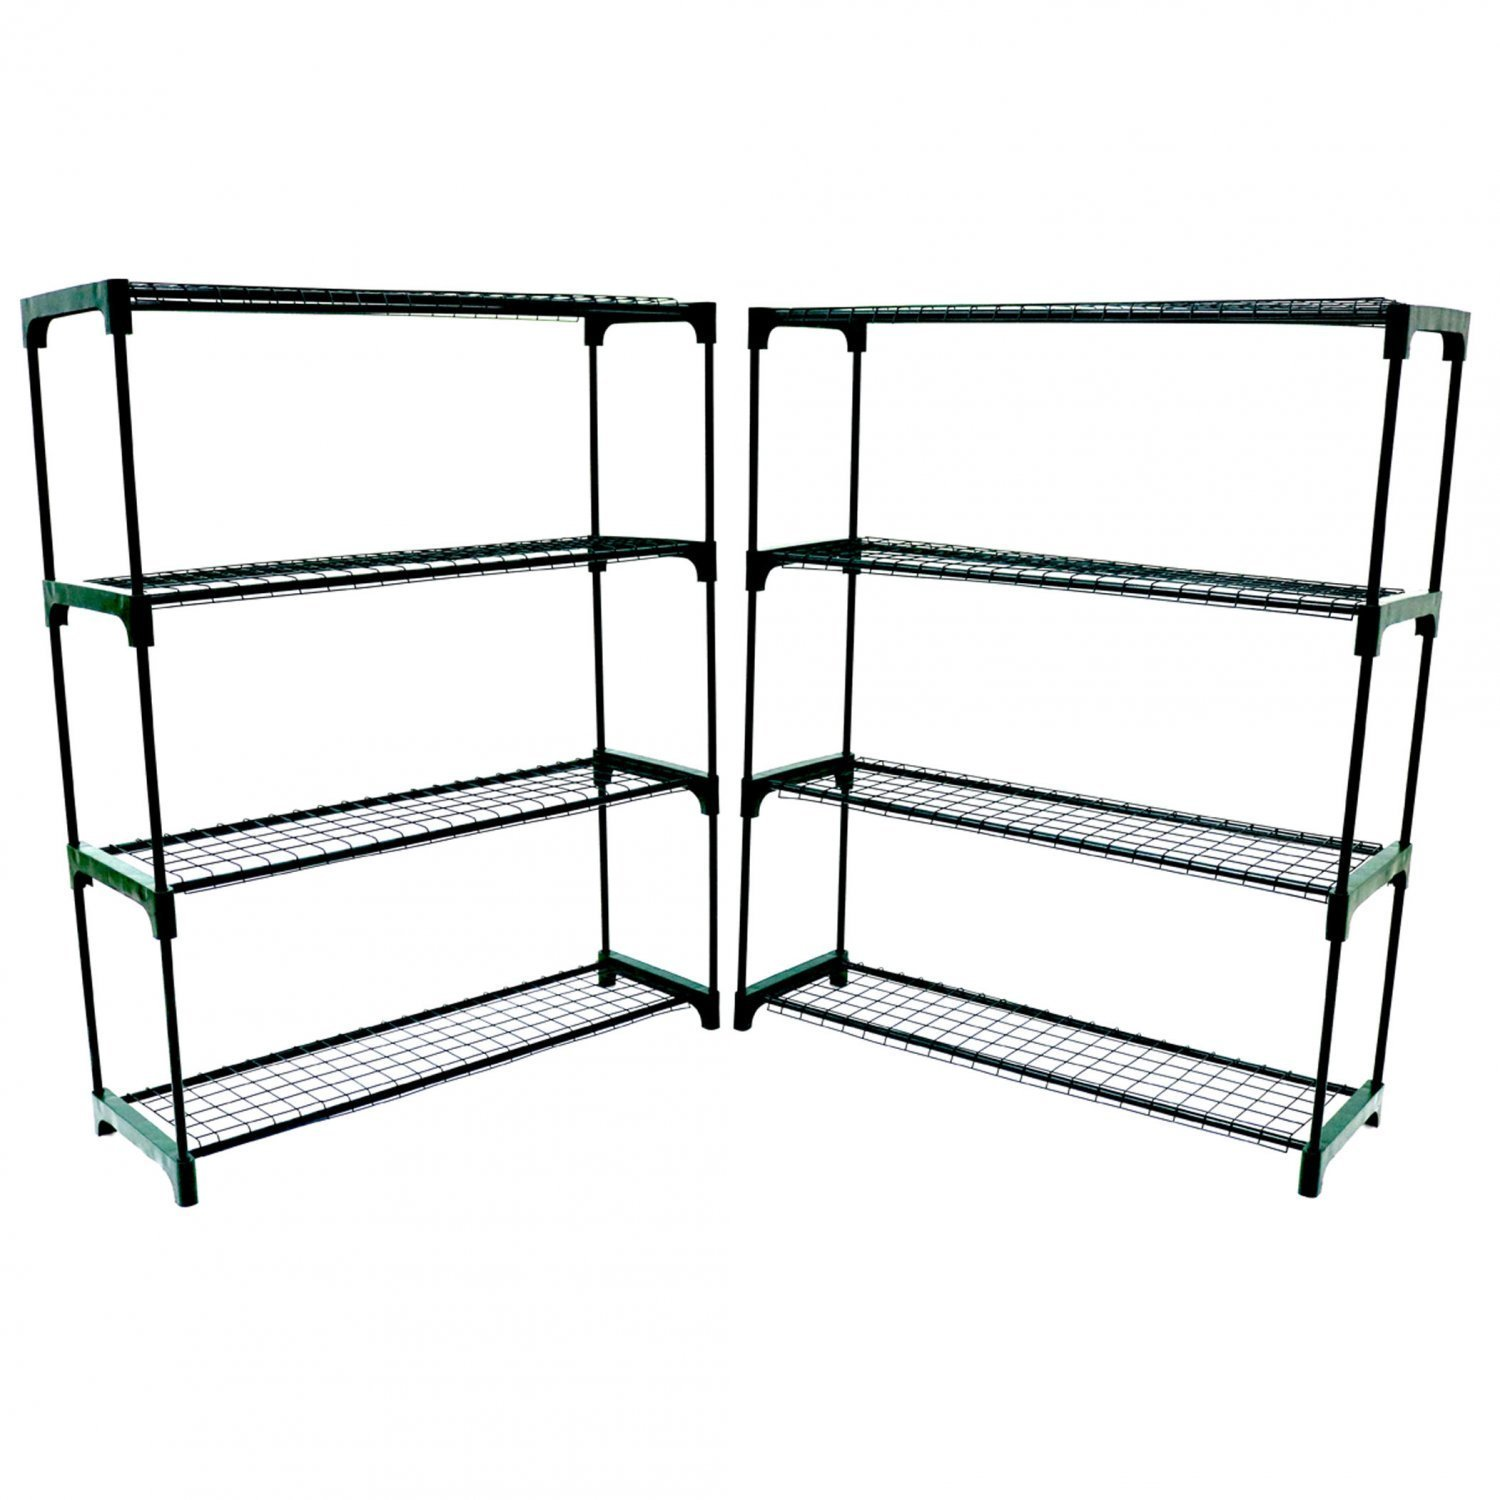 Oypla Flower Staging Display Greenhouse Racking Shelving Double Pack 3476A2P